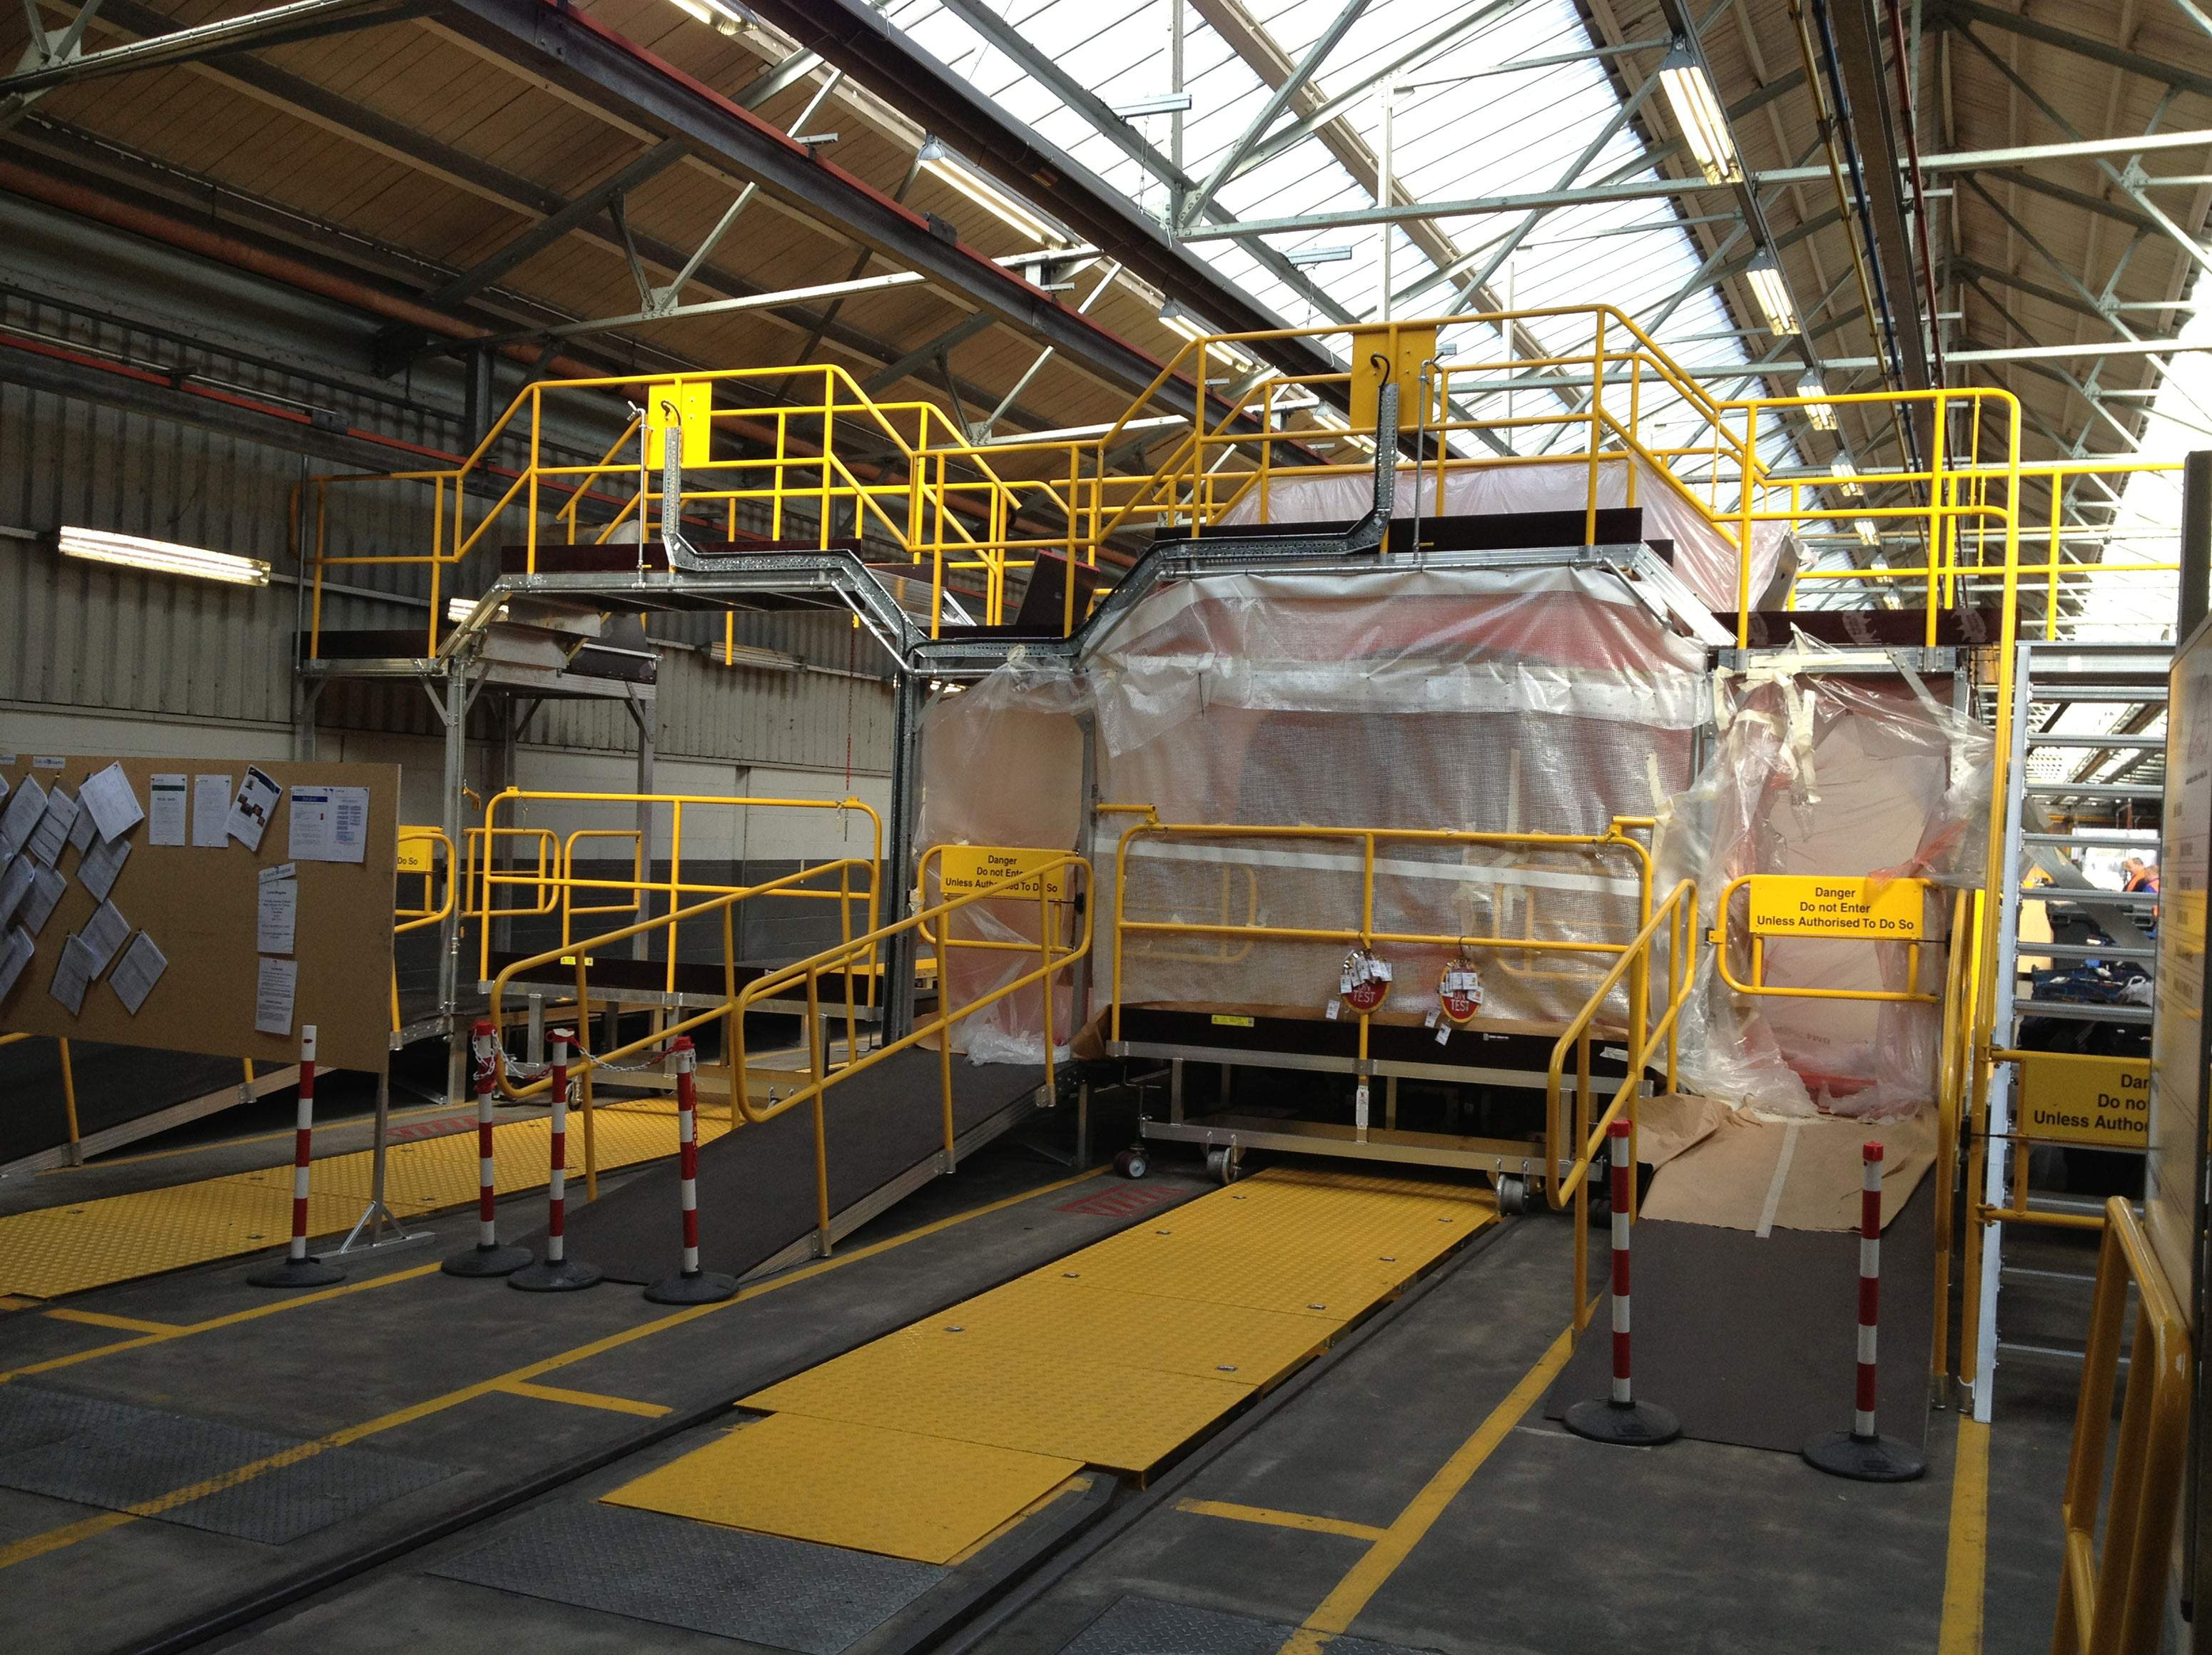 high and wide bespoke access platform for train maintenance